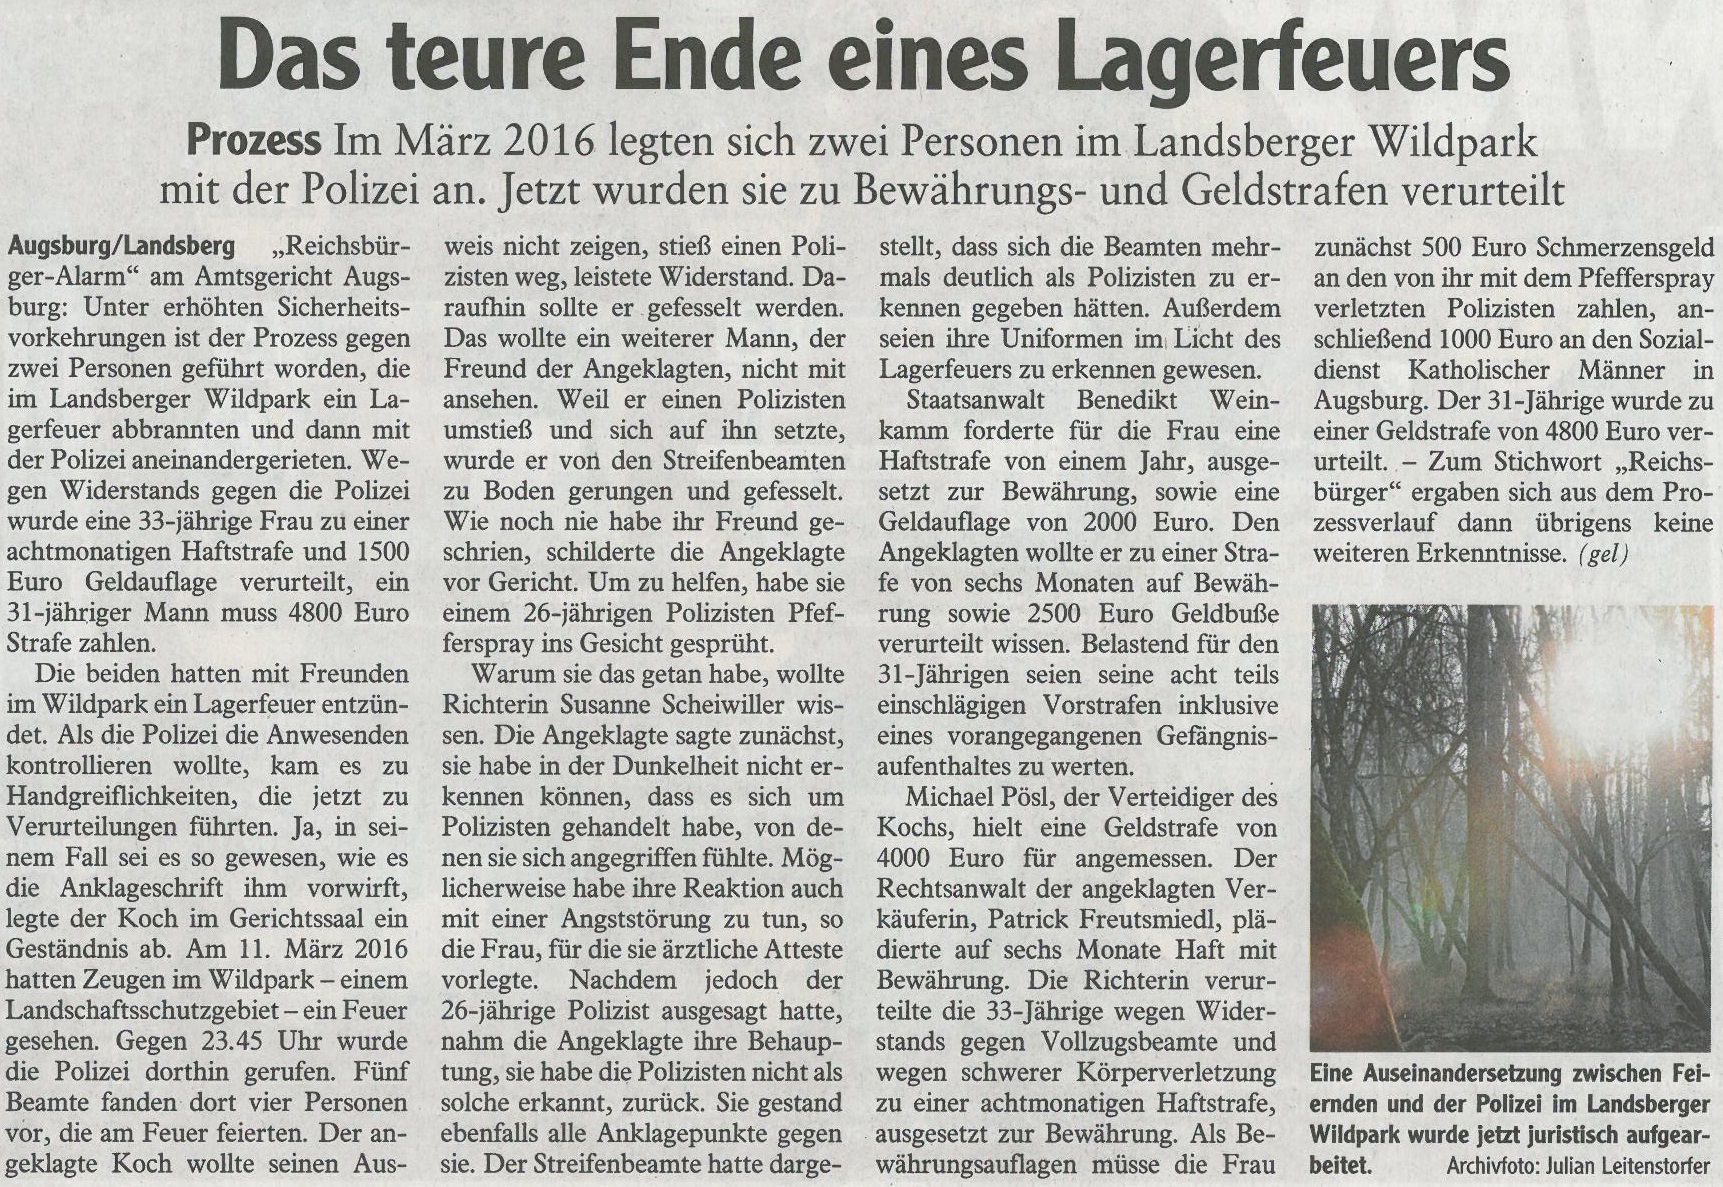 Landsberger Tagblatt, August 2017